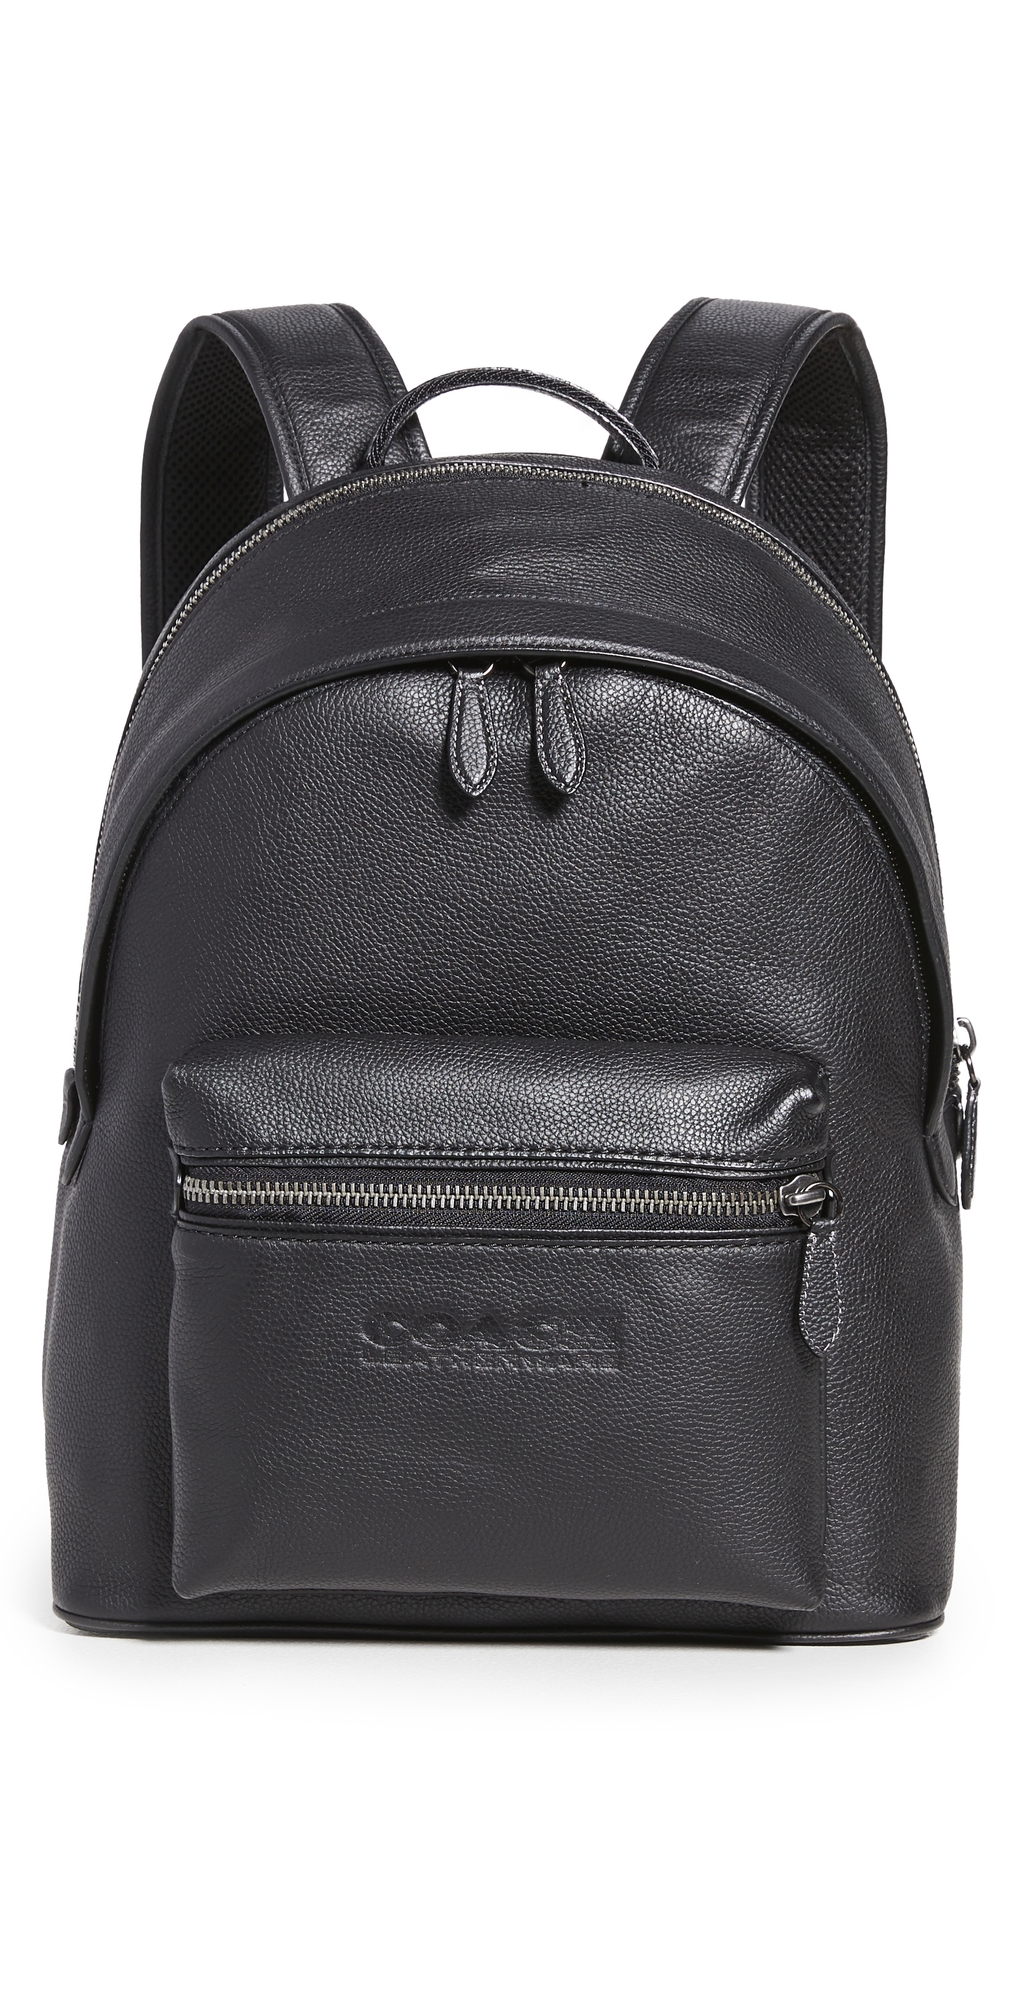 Charter Backpack in Refined Pebbled Leather